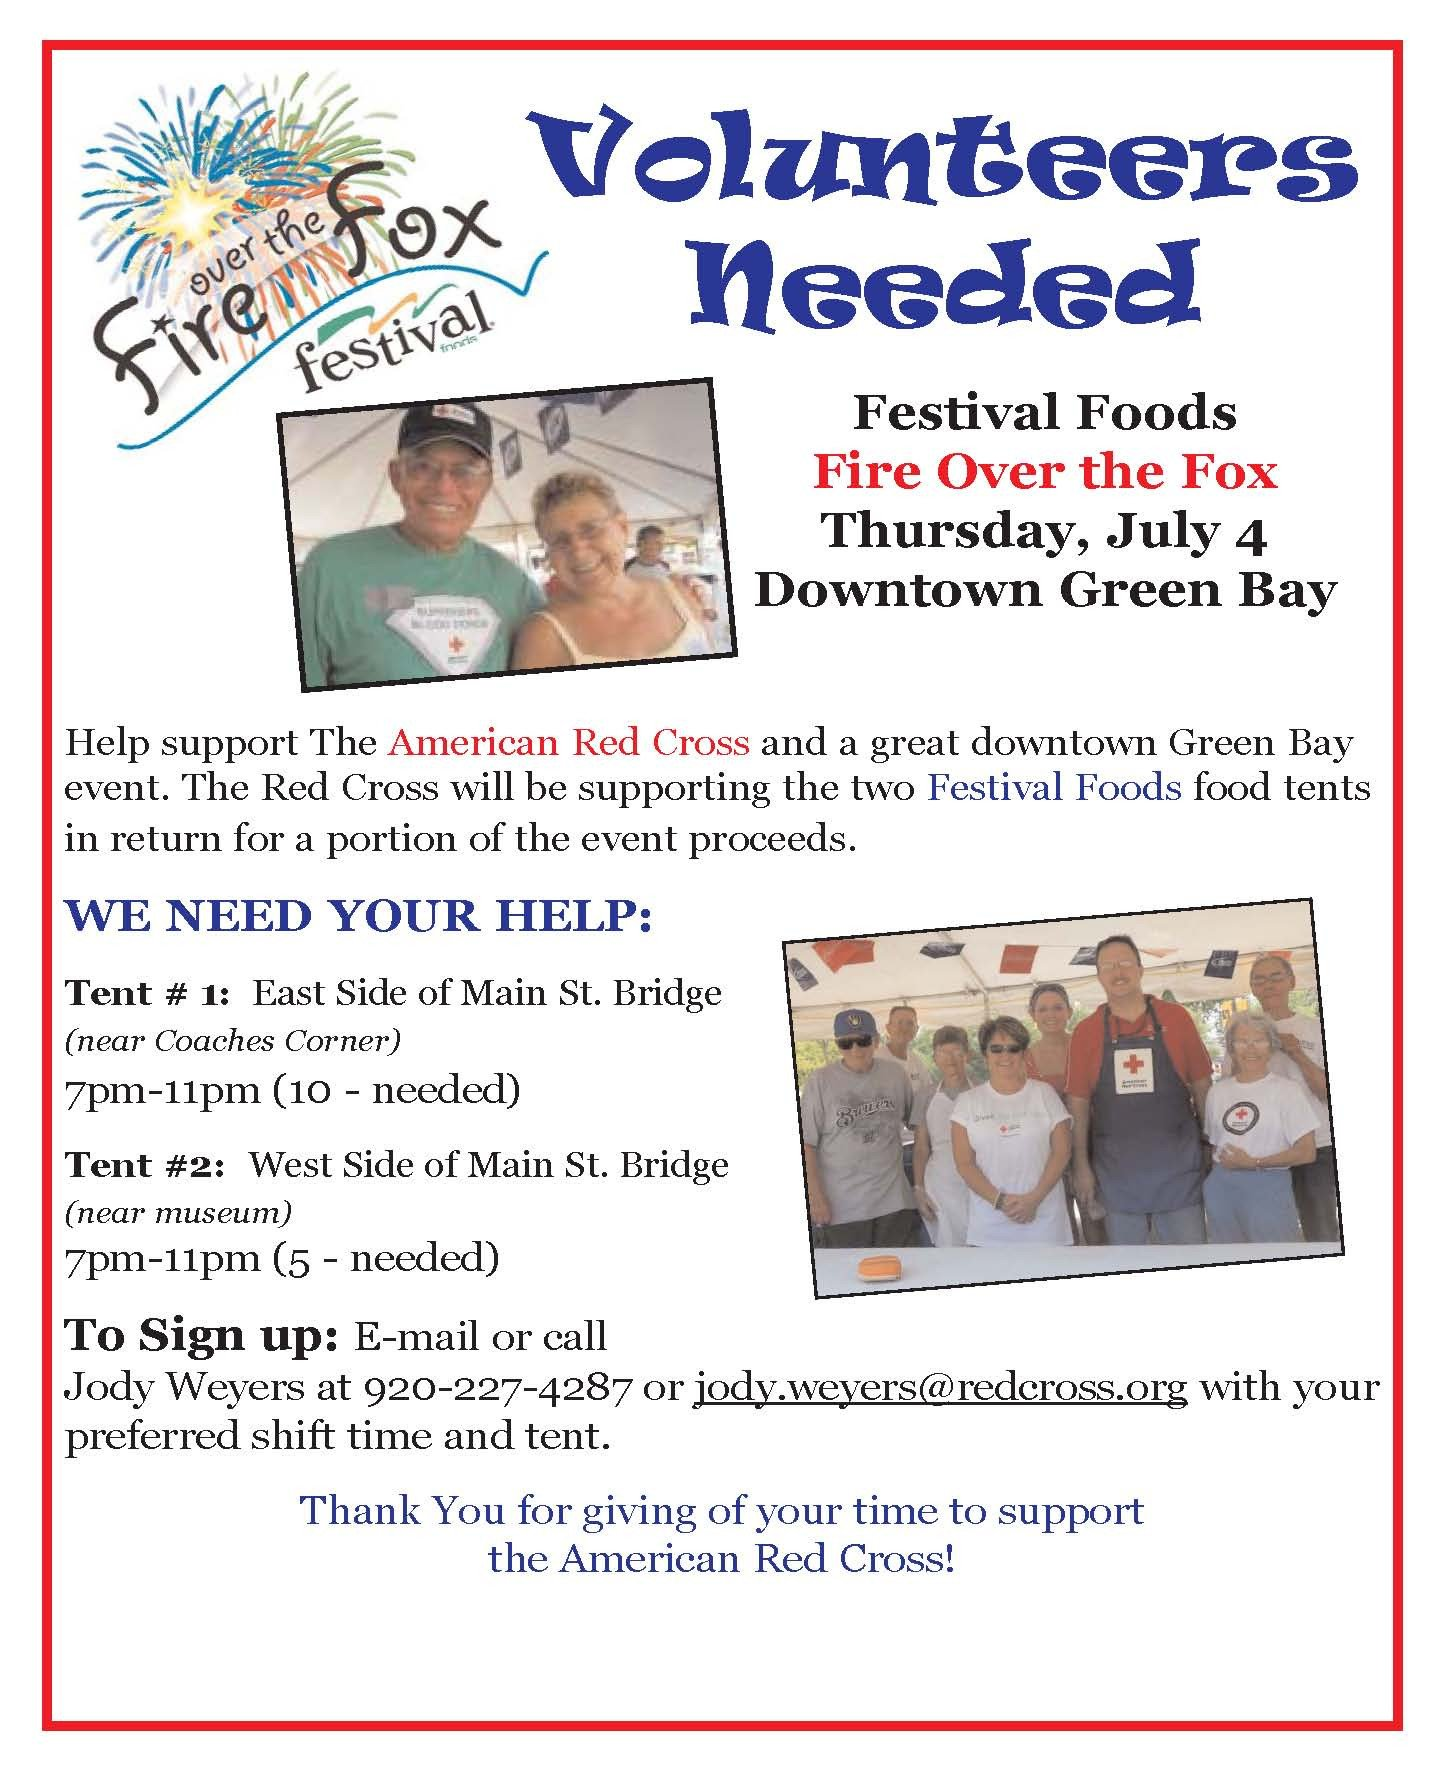 Volunteer Recruitment Flyer Template Volunteers Needed July 4th Festival Foods Fire Over the